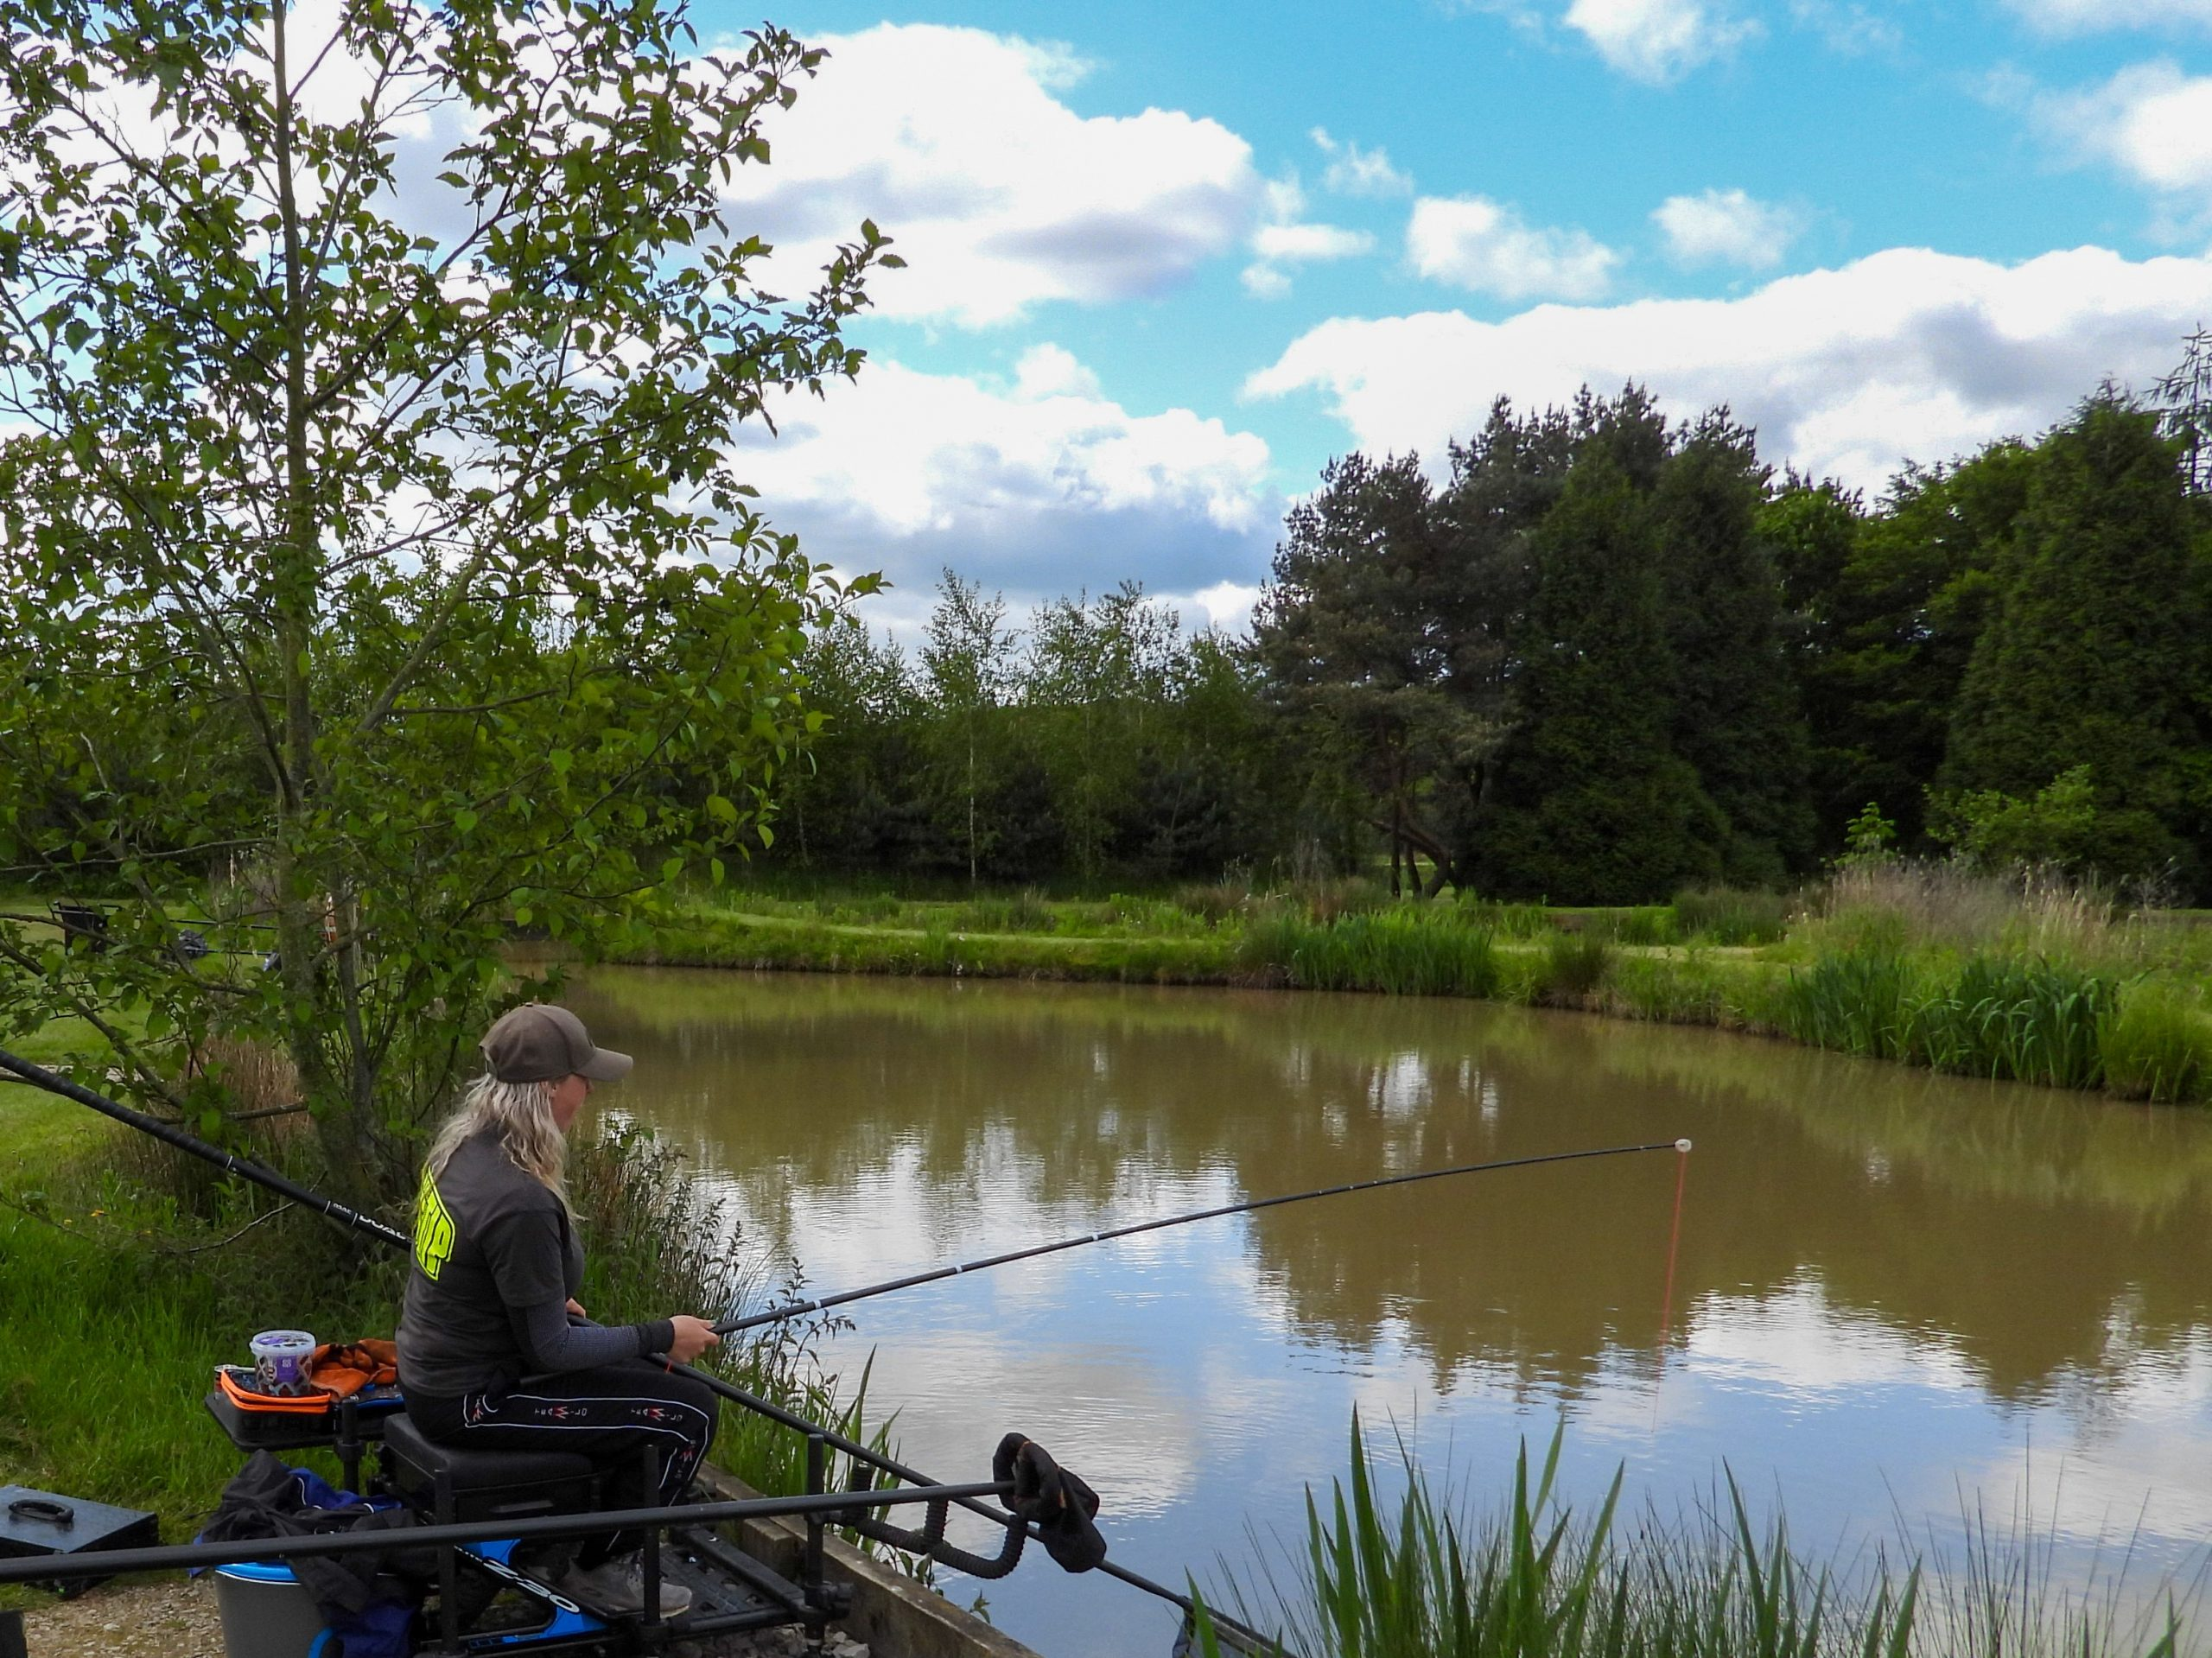 Get Fishing - Emma Harrison Fishing at a commercial fishery